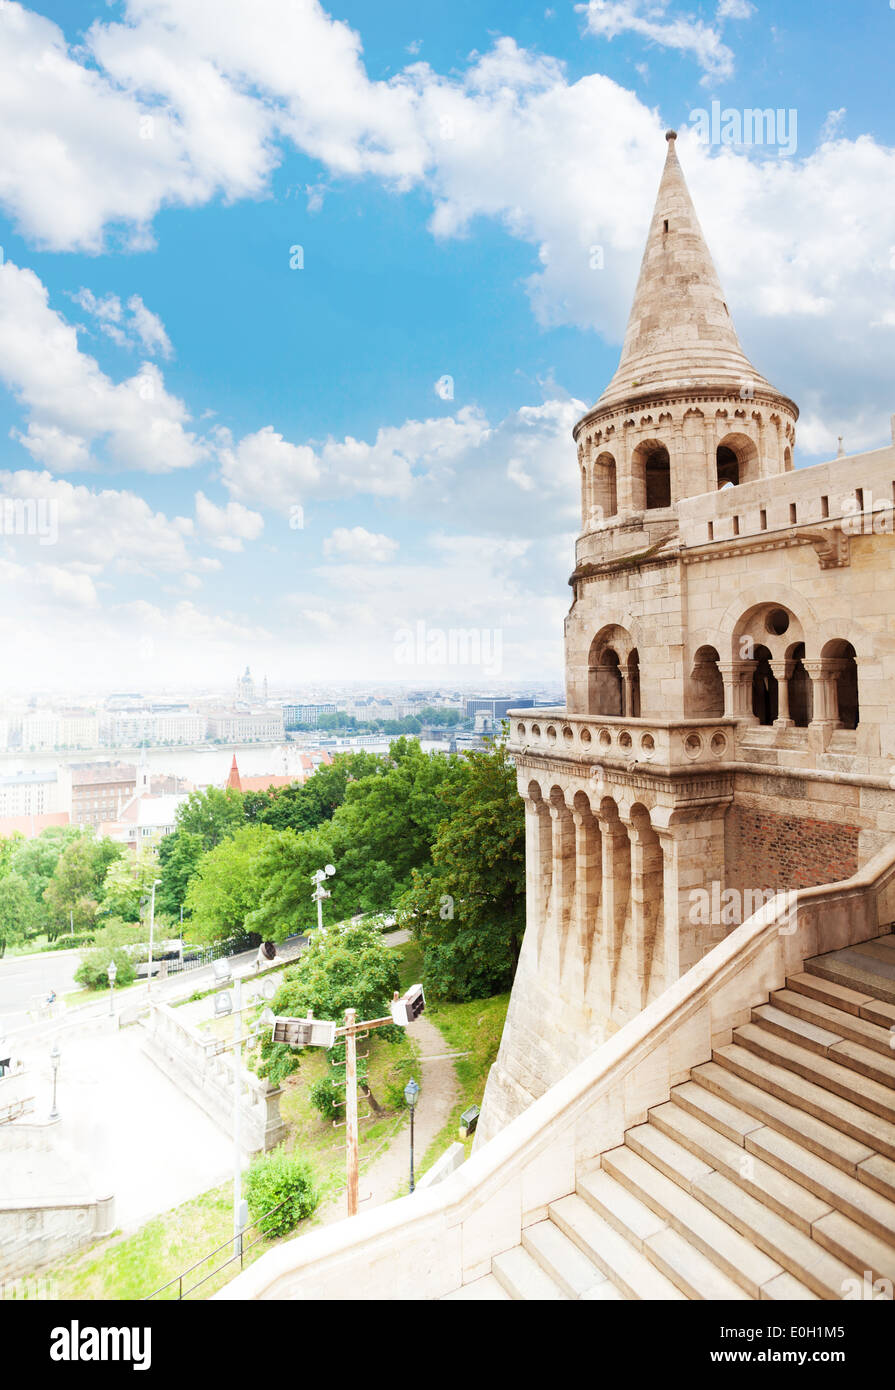 Fisherman's Bastion view in summer, Budapest - Stock Image